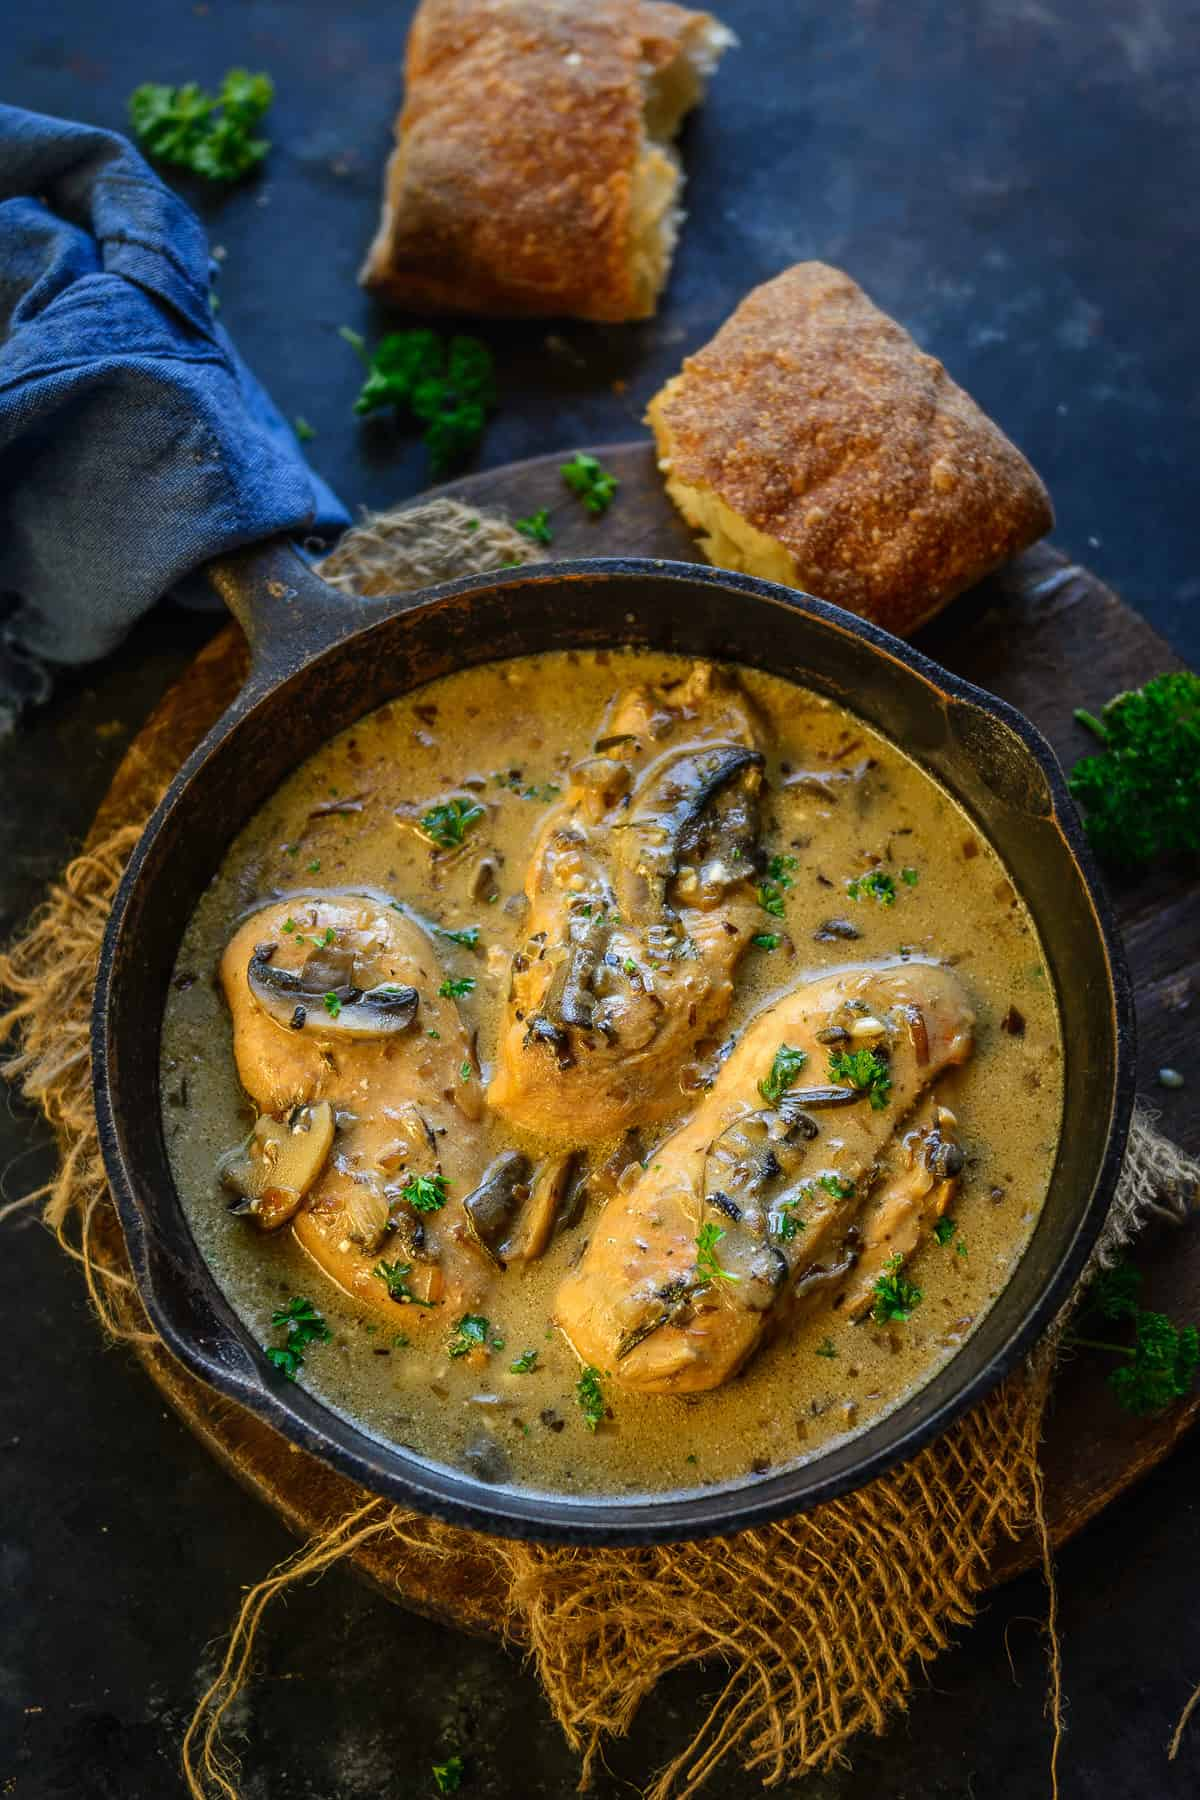 Chicken with Mushroom sauce served in a pan.